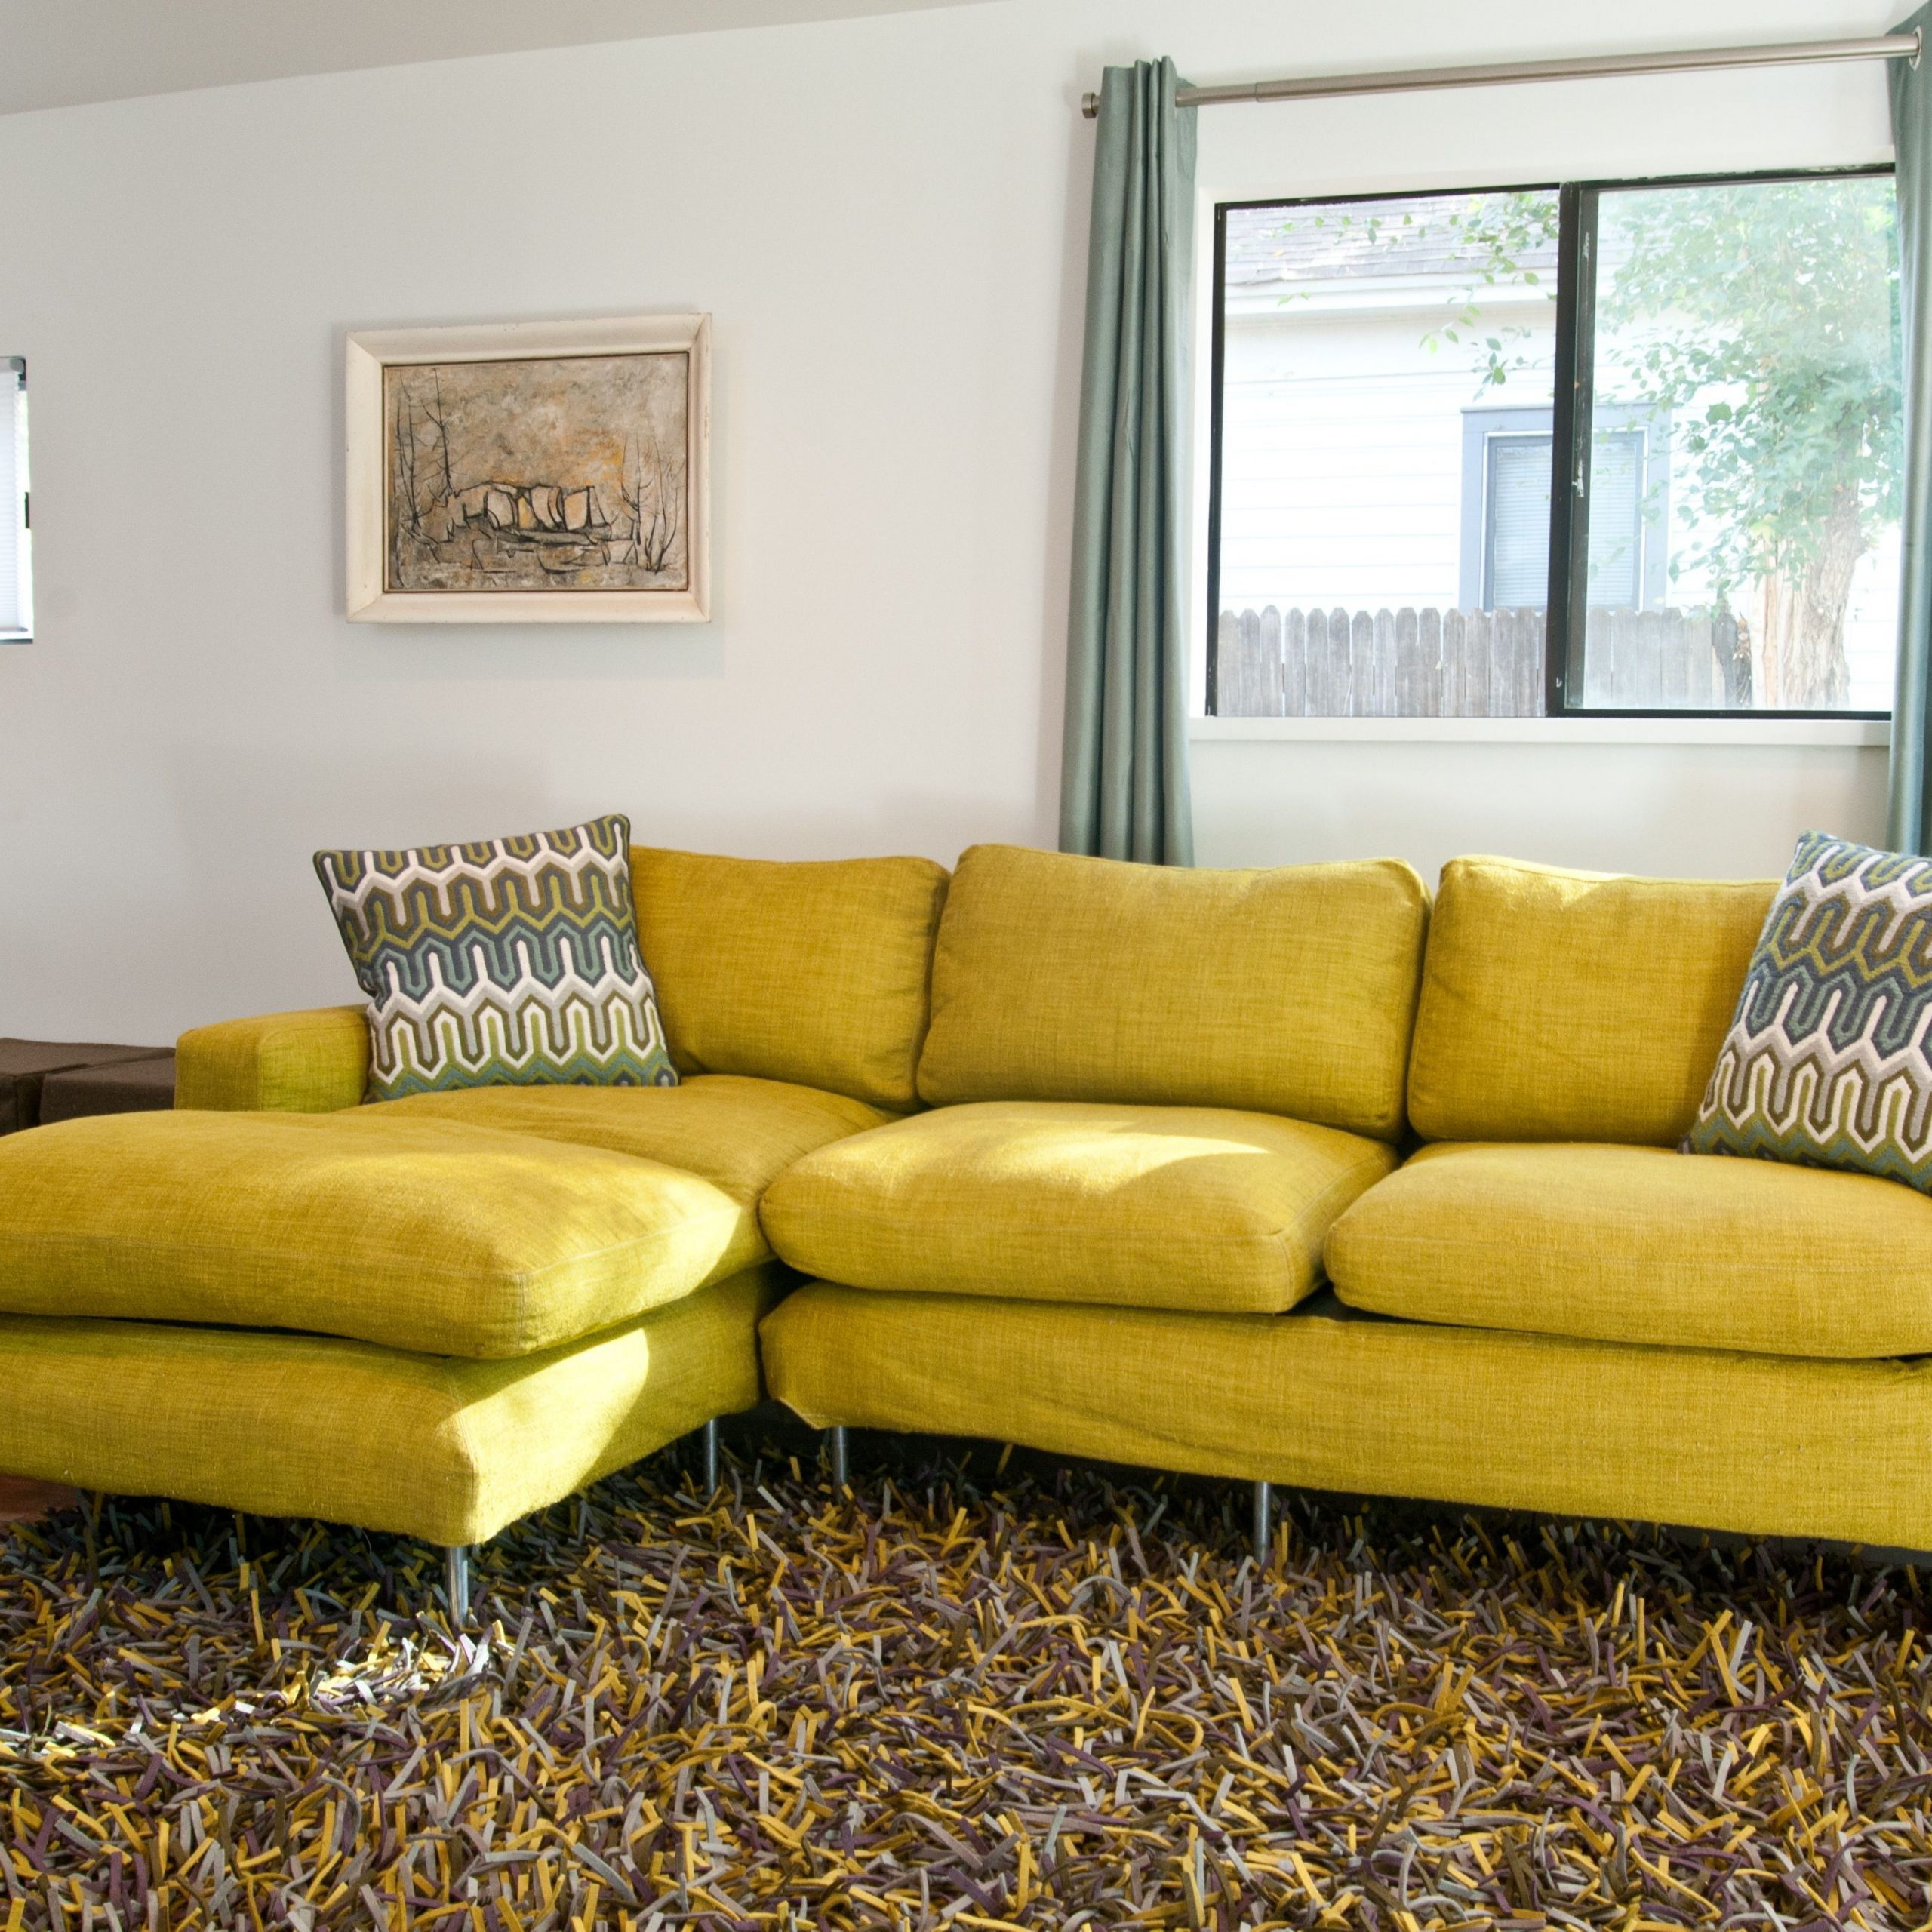 Newest Van Dyke Loveseats For Paint Colors That Match This Apartment Therapy Photo: Sw (View 13 of 25)